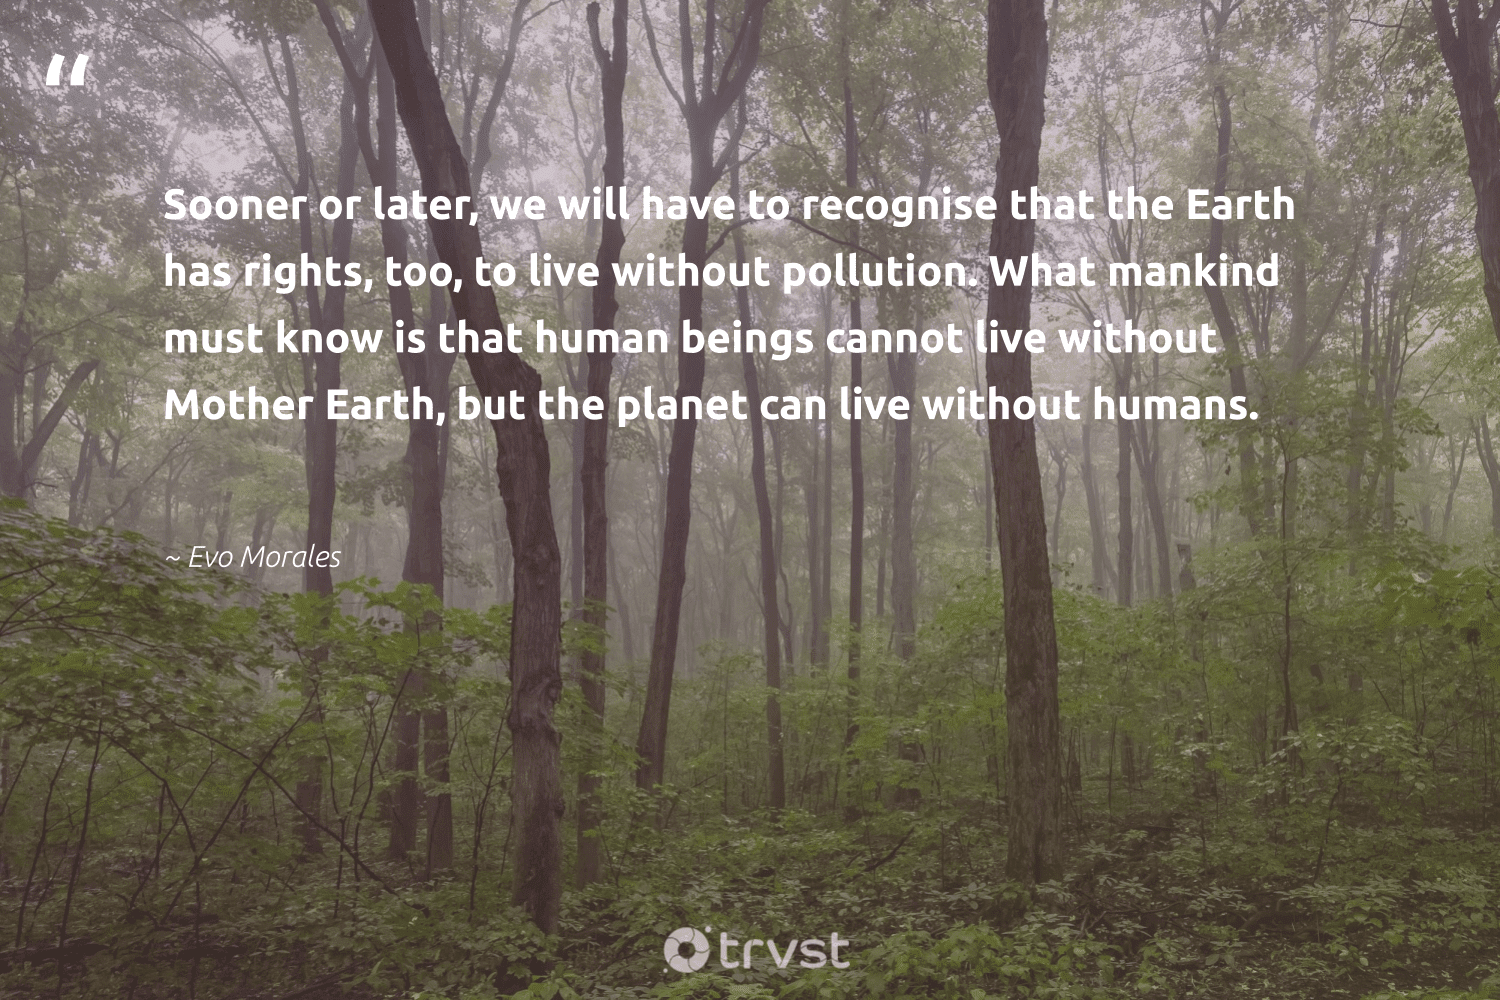 """""""Sooner or later, we will have to recognise that the Earth has rights, too, to live without pollution. What mankind must know is that human beings cannot live without Mother Earth, but the planet can live without humans.""""  - Evo Morales #trvst #quotes #environment #earth #planet #pollution #mothernature #giveback #sustainableliving #thinkgreen #nature #conservation"""